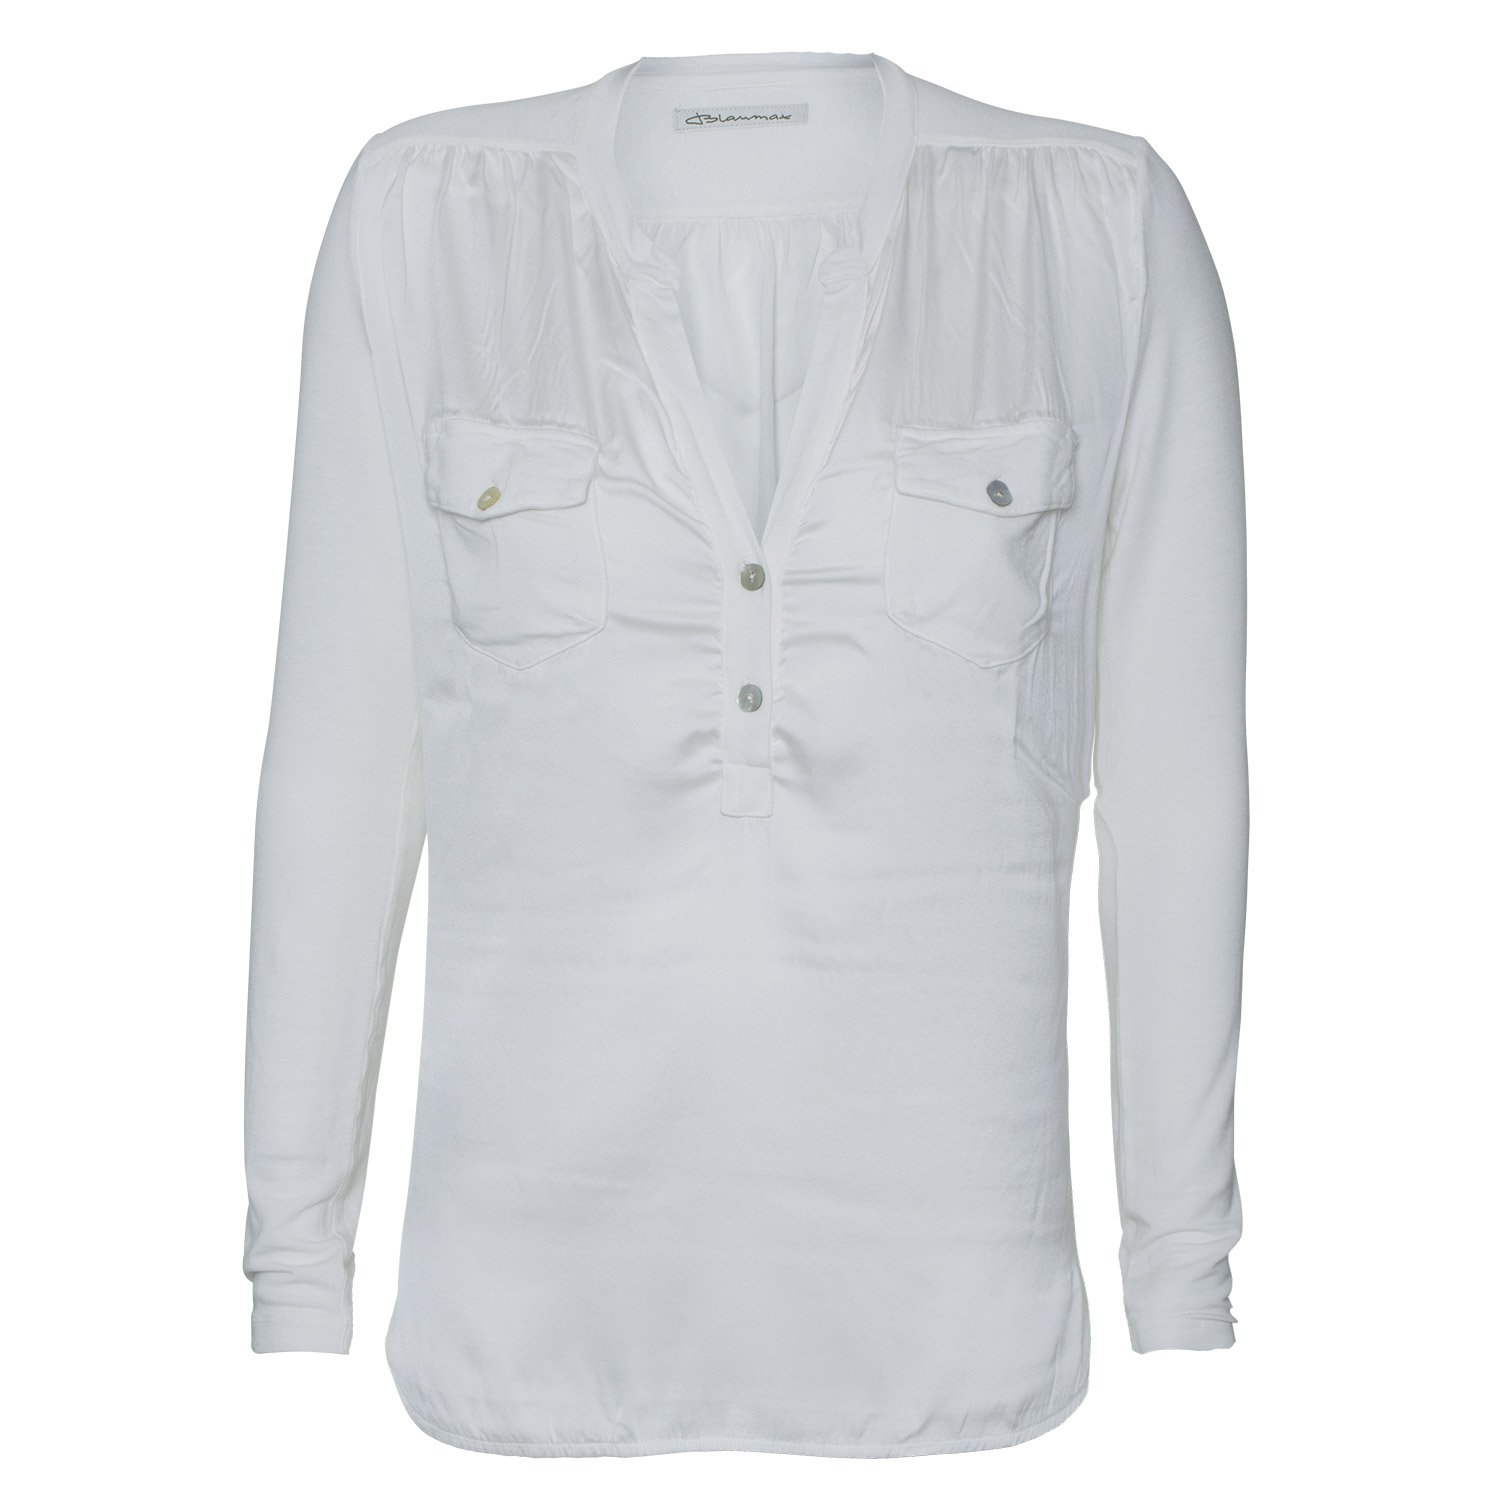 "'""Salma?-?Women's Blouse Blue Max?-?Off-White"